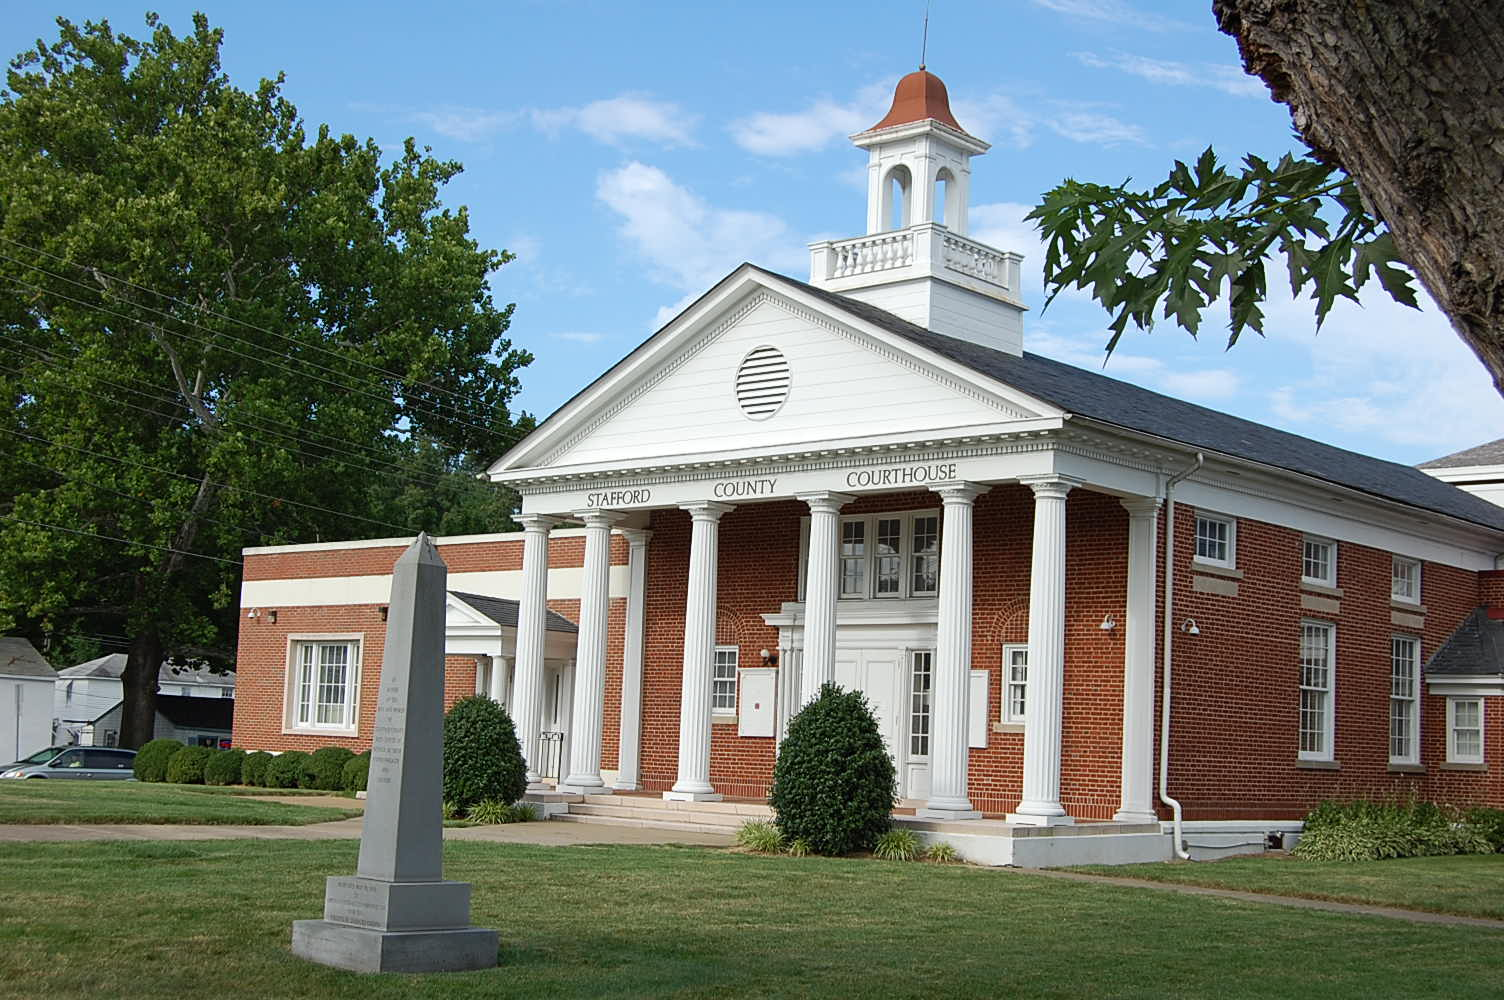 Stafford Courthouse